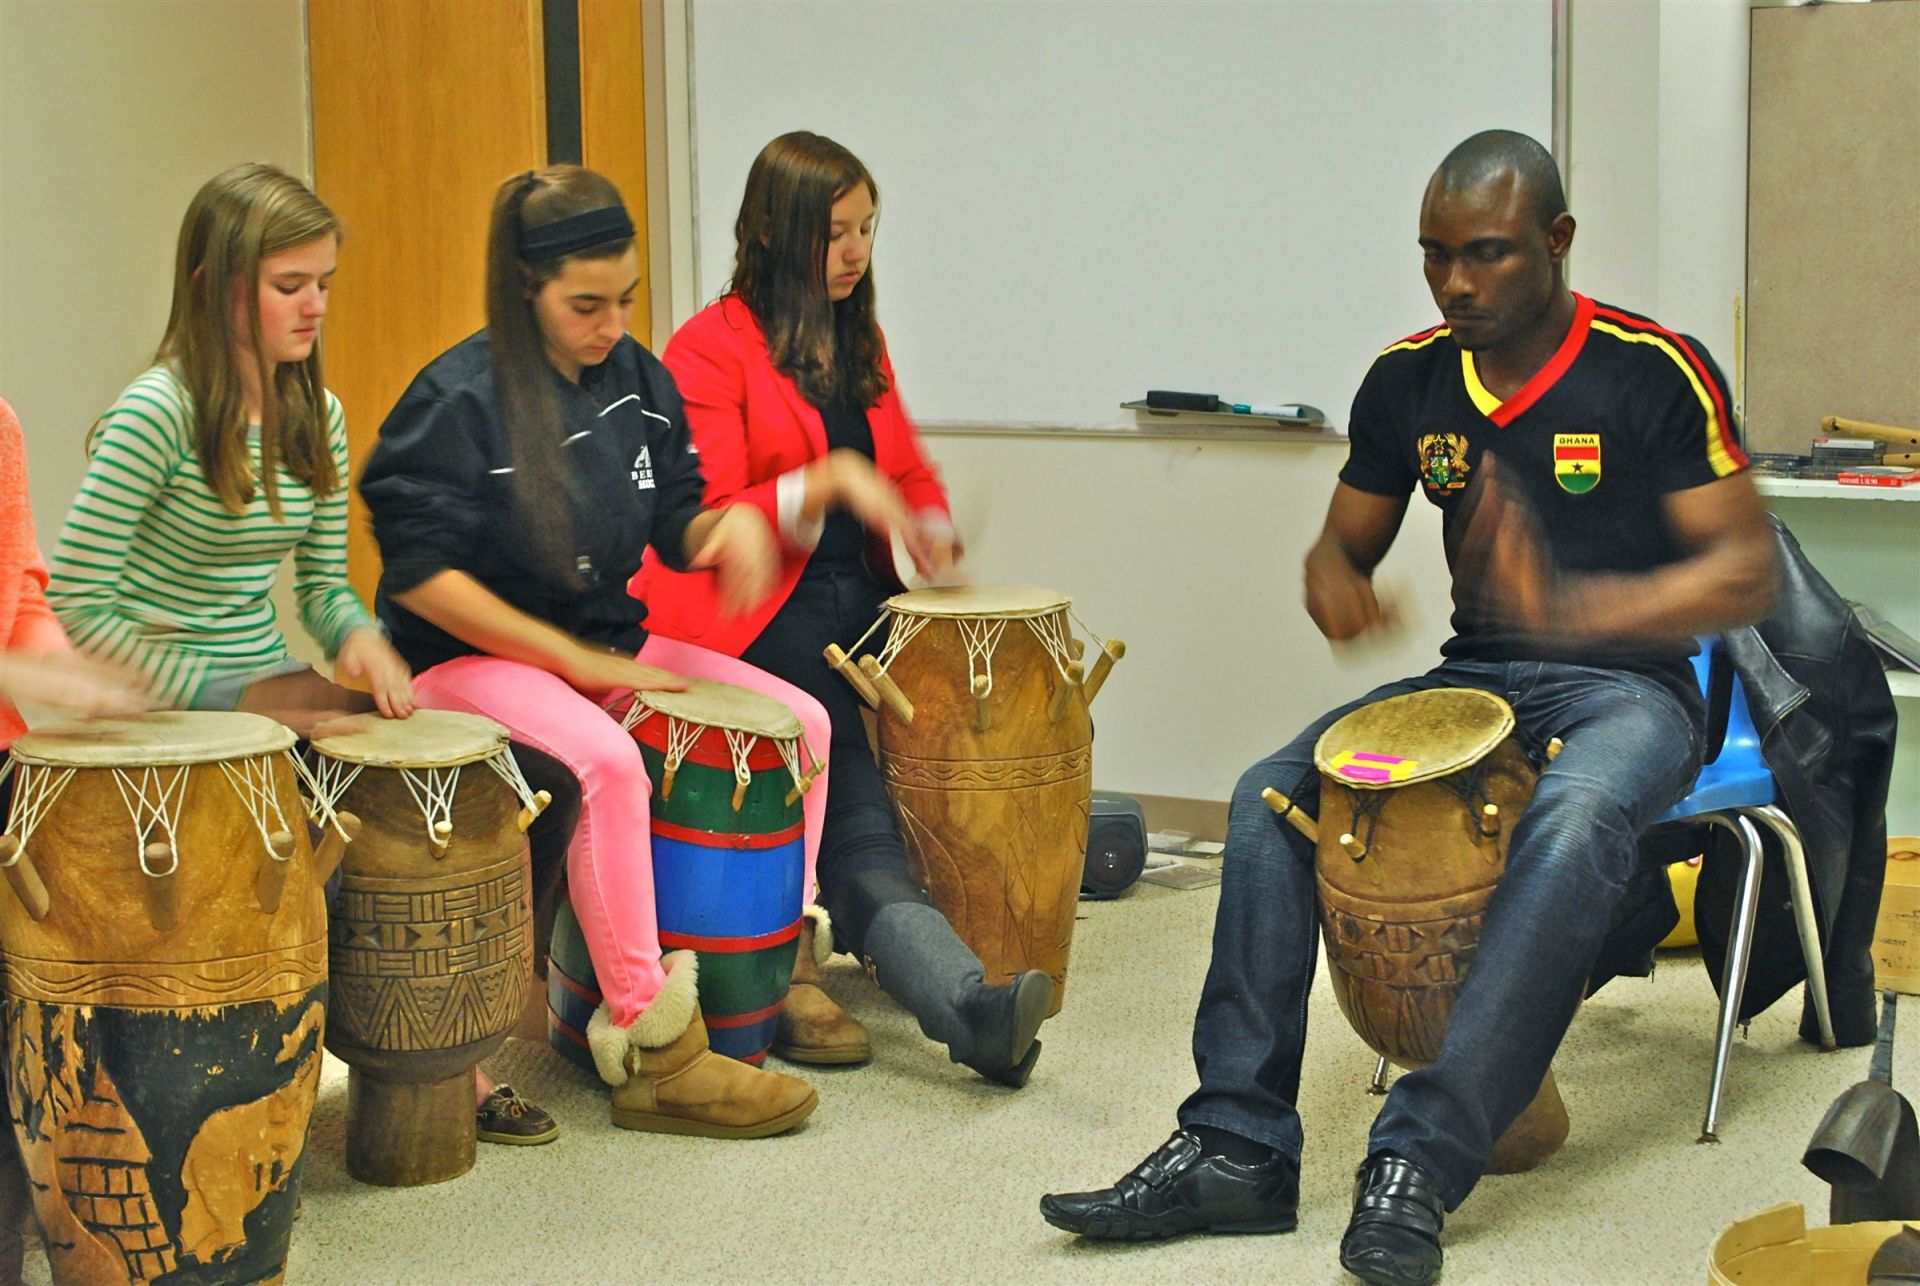 Our African Ensemble course focuses on the traditional music of the Ewe people of Ghana and the Shona of Zimbabwe. Students drum, sing and specialize on marimba or kalimbe. In recent years, we have welcomed Nani Agbeli, a visiting professor from Tufts University who shared his own cultural experience from Ghana, Africa while working with our students. It has become a school tradition for our African drumming students to open every All-School assembly as our students arrive.